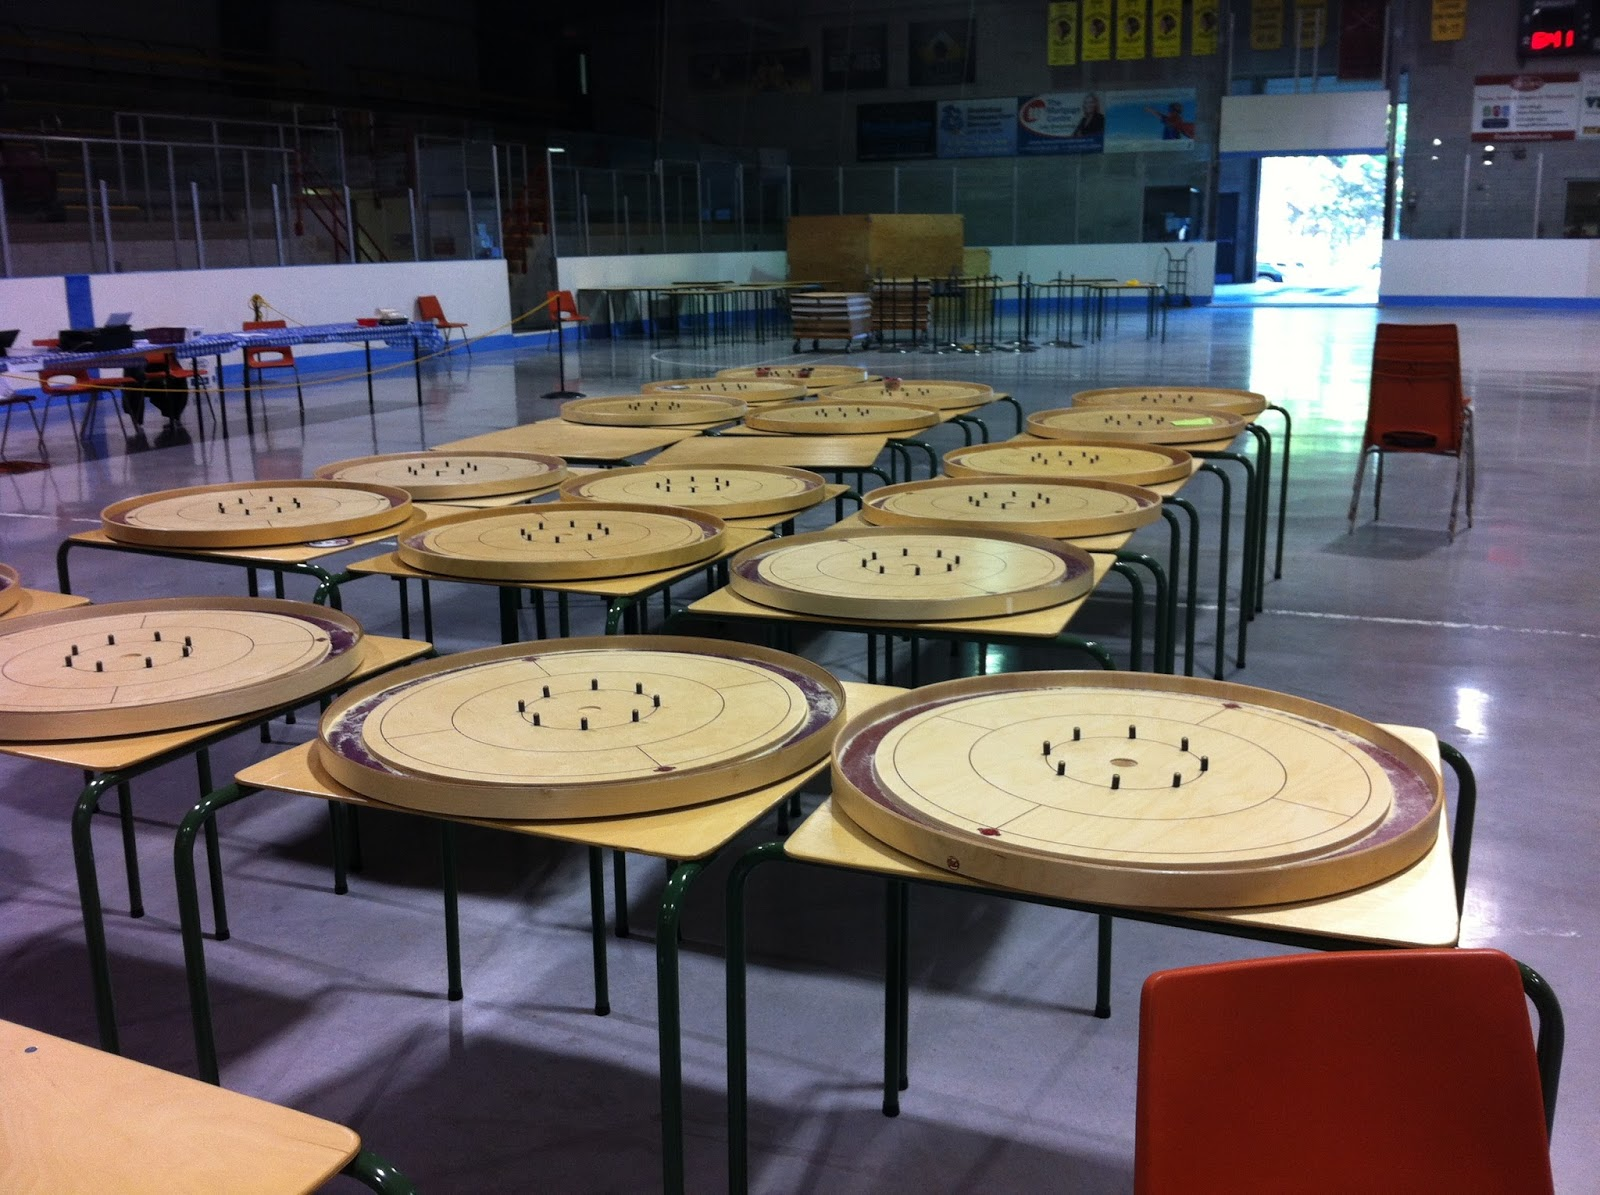 A small sample of all of the boards that were in action at the 2015 World Crokinole Championship.